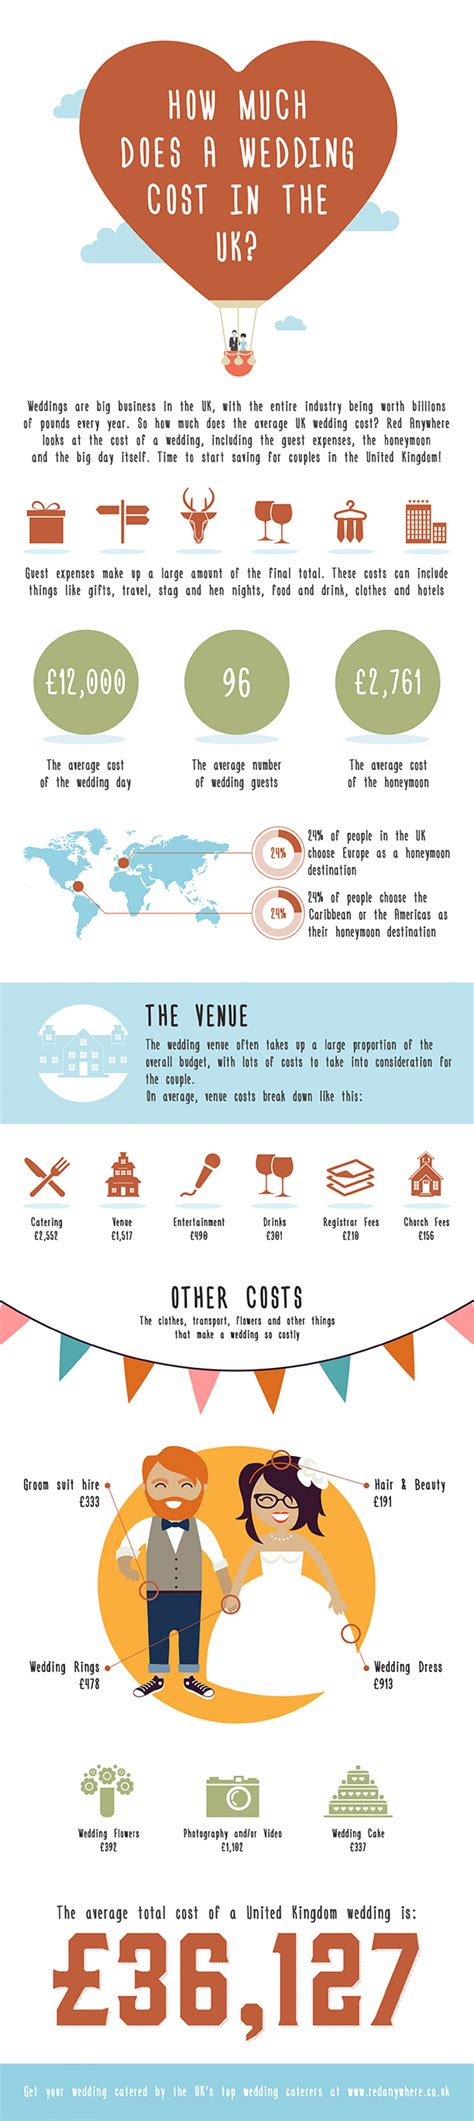 How Much Does A Wedding Cost In The UK? | Visual